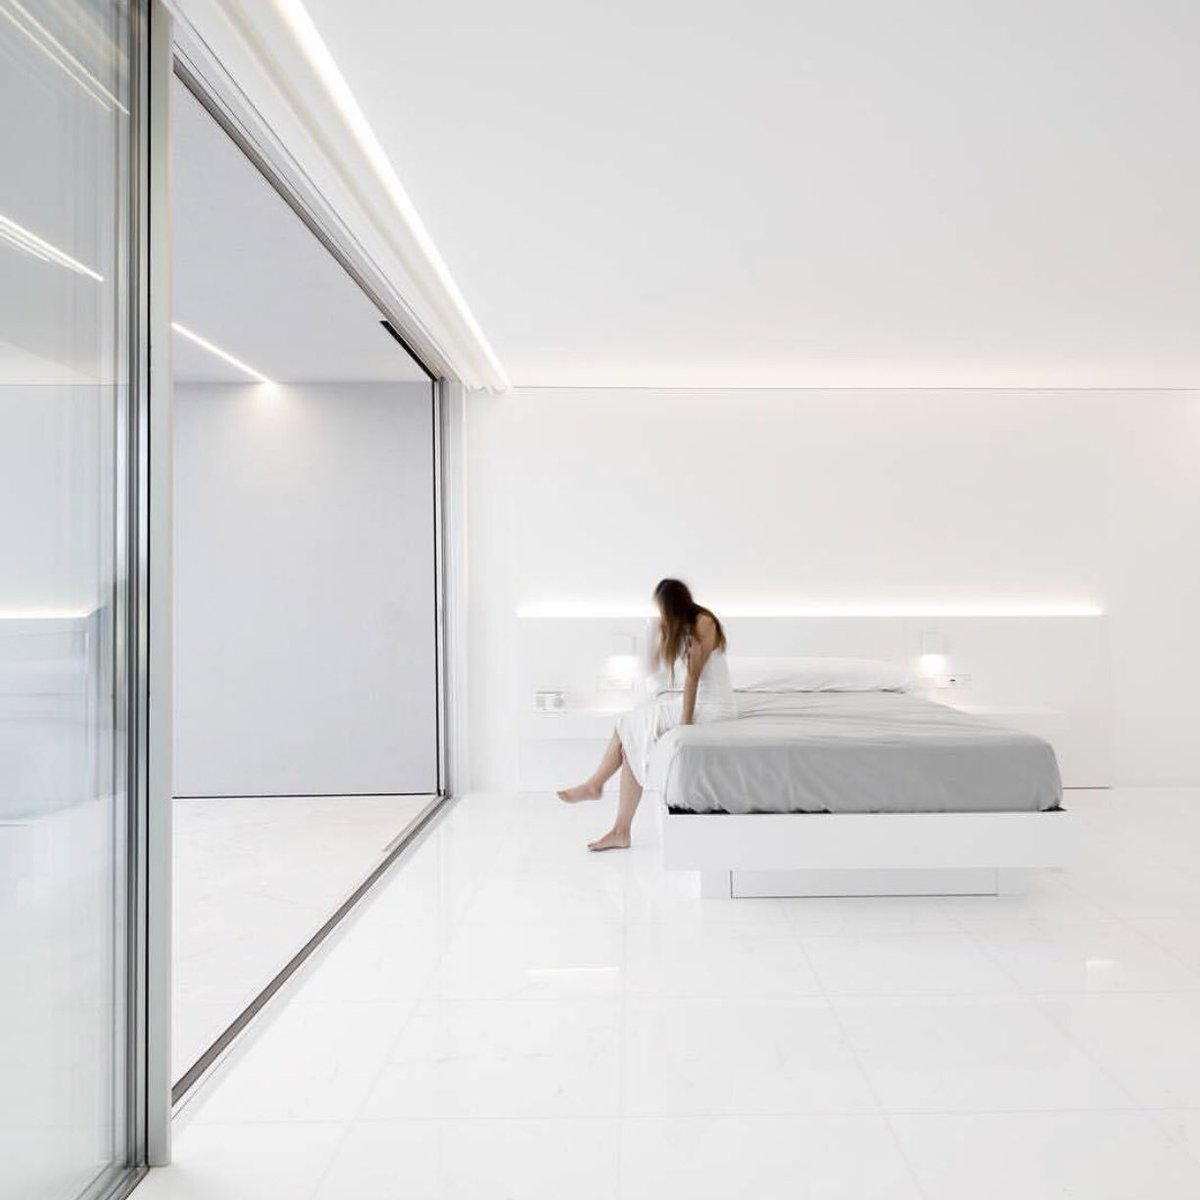 The subtle luxury of modern living.  La Pinada House by @FranSilvestreAr. #5STYLE #minimalist #architecture #minimal #luxury #white #home<br>http://pic.twitter.com/xYe7Pr9Ouq